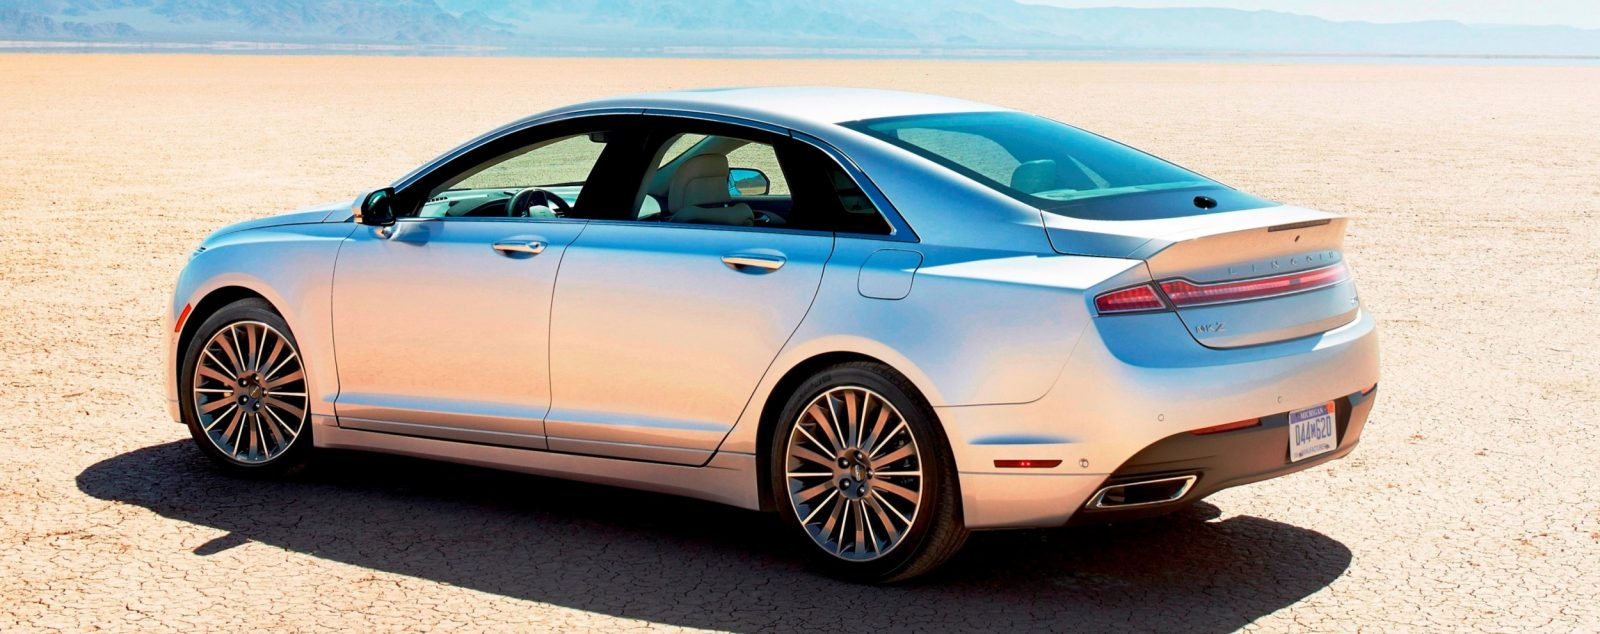 2014 lincoln mkz 3 7 awd shows very handsome kamm tail gif. Black Bedroom Furniture Sets. Home Design Ideas